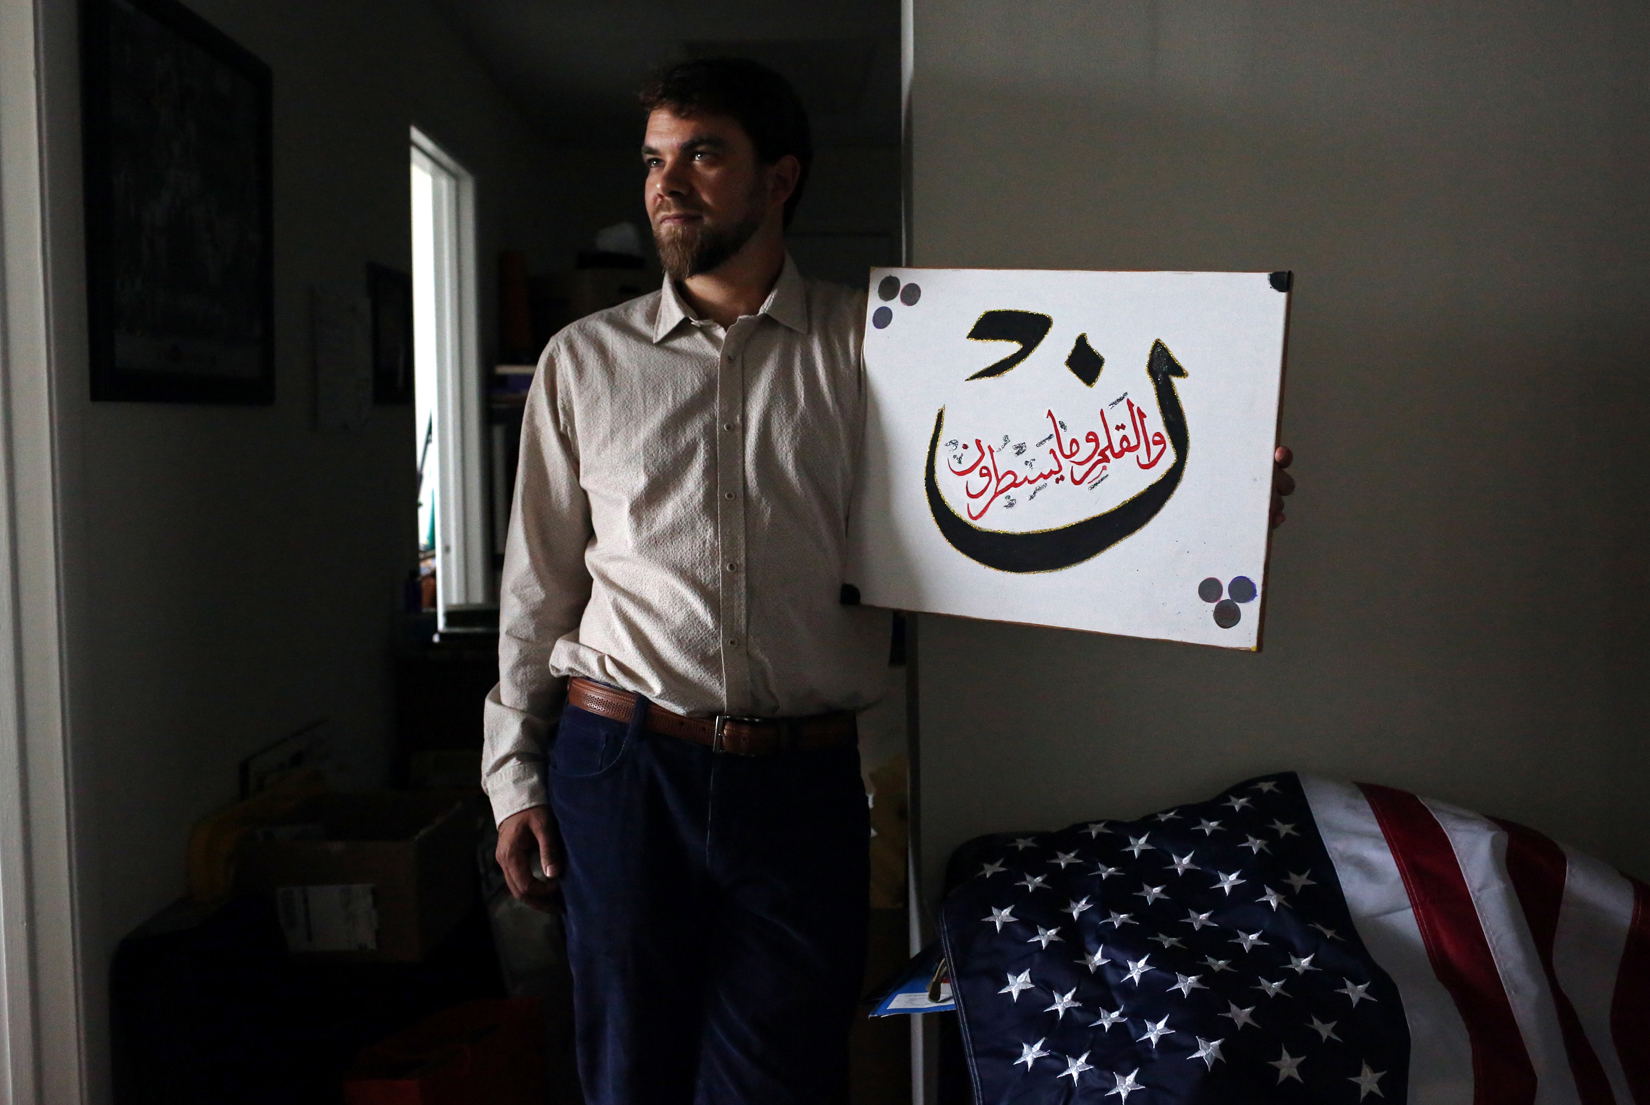 "A small and fascinating subset of Muslim Americans express an interest in voting for U.S. presidential candidate Donald Trump. In Florida, a particularly large proportion of Muslim Republicans (approx. 2 out of every 3, according to CAIR,) have such leanings - Trump's business background and apparent ability to self-finance eclipsing his anti-immigrant, Islamophobic rhetoric as priorities. Adam Warshauer, 37, seen here posing for a portrait with a passage from the Surat Al-Qalam in the Koran in Delray Beach, has a Jewish father and Christian mother, and became a Sufi Muslim at 22. Warshauer says he plans to support Trump, especially if he becomes the Republican nominee for president, and that he does not believe he wants to ban Muslims' entry to the country because of a dislike for them. ""Most are outraged at Trump saying he wants to ban Muslims from entering America, but I support that as a Muslim person, because we have to stop what is happening and work with other Muslim countries to stop terrorism. An example of Trump being a problem solver is his proposal for building the wall along the Mexico border - that's a solution to illegal immigration. But I am worried about his approach to foreign policy, since he is a bit aggressive. Then again, Putin respects him and that's good; we want Putin to respect our country."" Warshauer adds that {quote}Trump says a lot of dumb things, and I'd like to help him. I'm not necessarily a 'Trump Trump Trump!' first pumper, but I am being a realist, and if he is going to win, I want to support him to make the best decisions for our country.{quote}(For TIME magazine)"